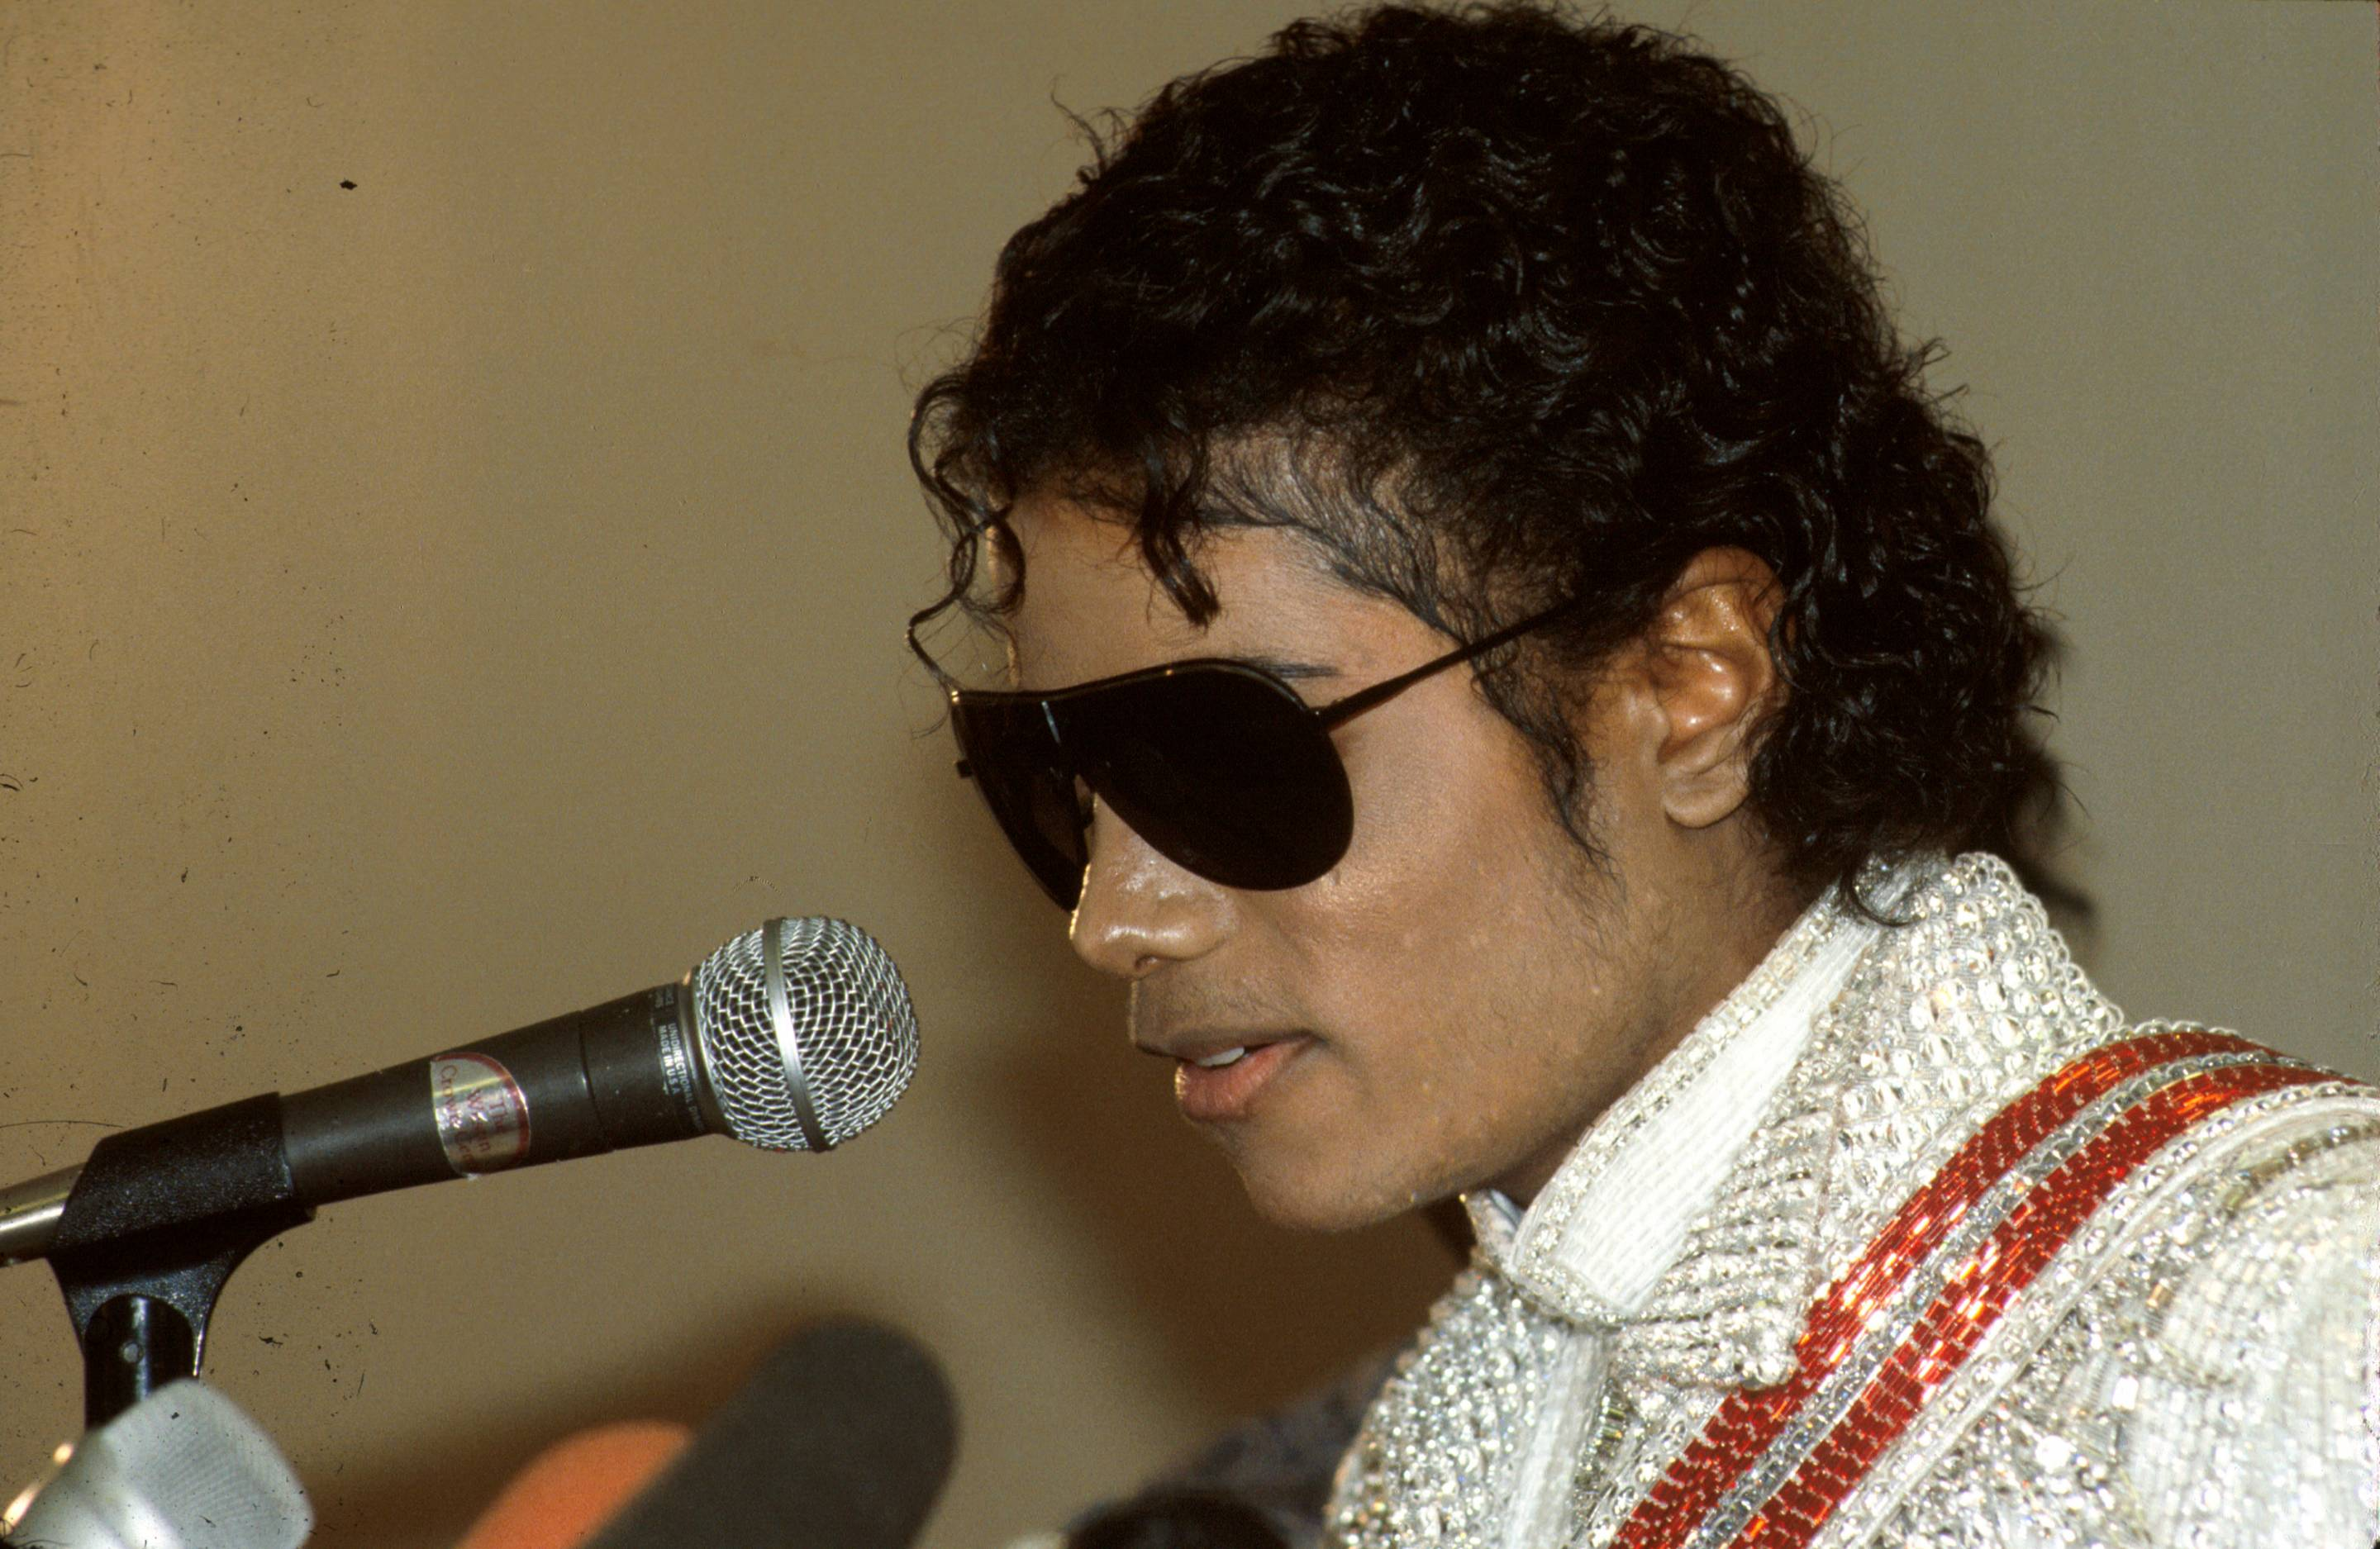 HBO to Debut 'Devastating' Michael Jackson Movie in March